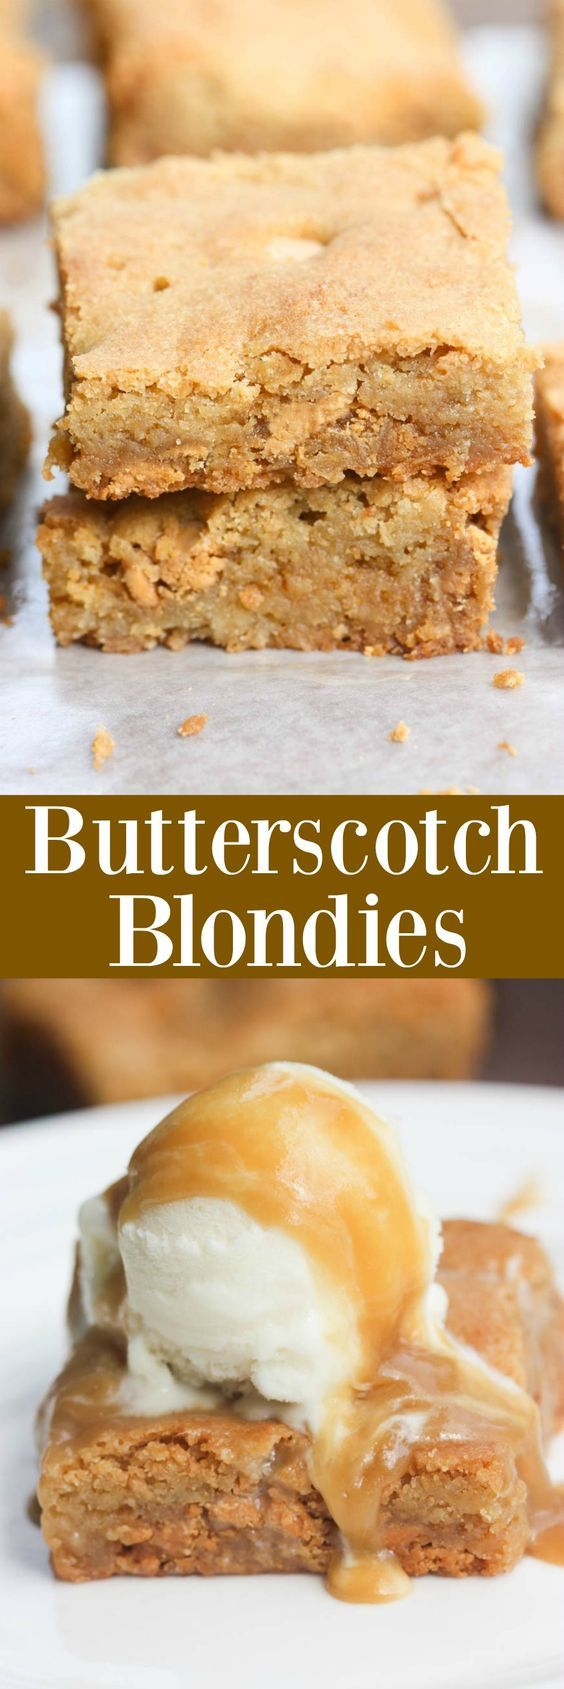 Chewy homemade blondies with butterscotch chips. These Butterscotch Blondies are the BEST, especially served with ice cream and an easy homemade butterscotch sauce. | Tastes Better From Scratch